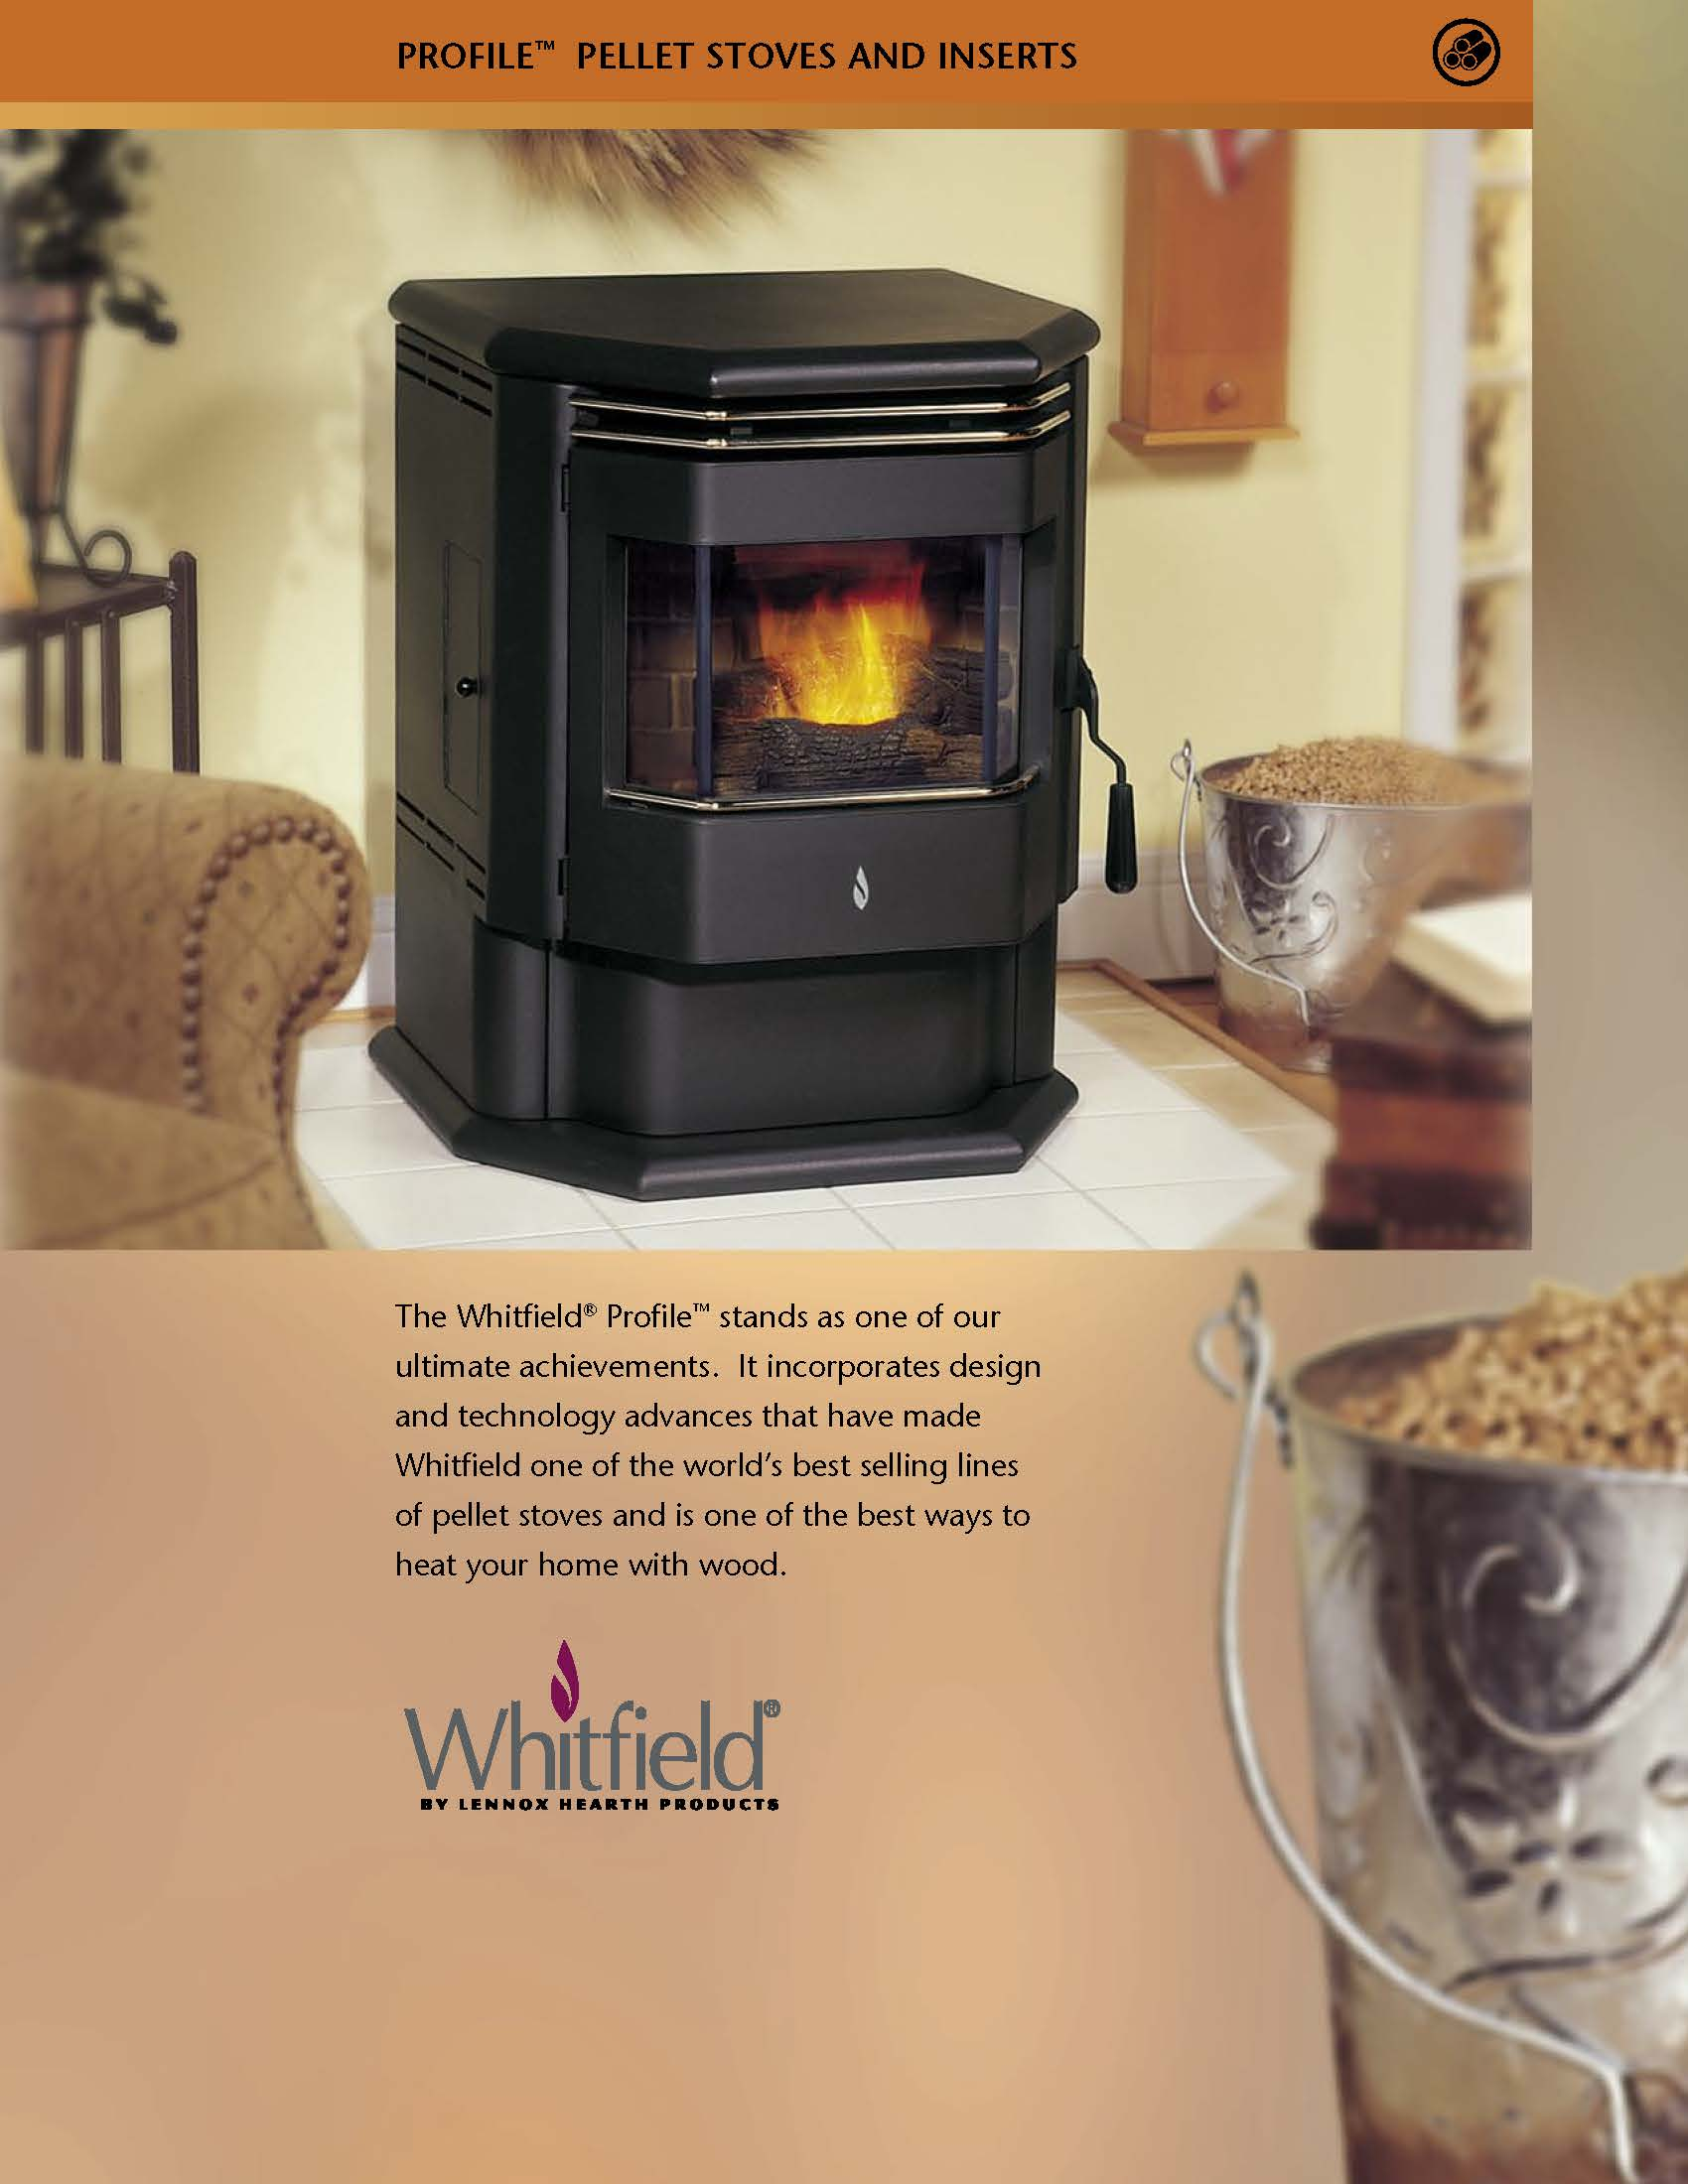 Terrific Whitfield Profile 20 30 Pellet Stove Brochure Freestanding Home Interior And Landscaping Ologienasavecom